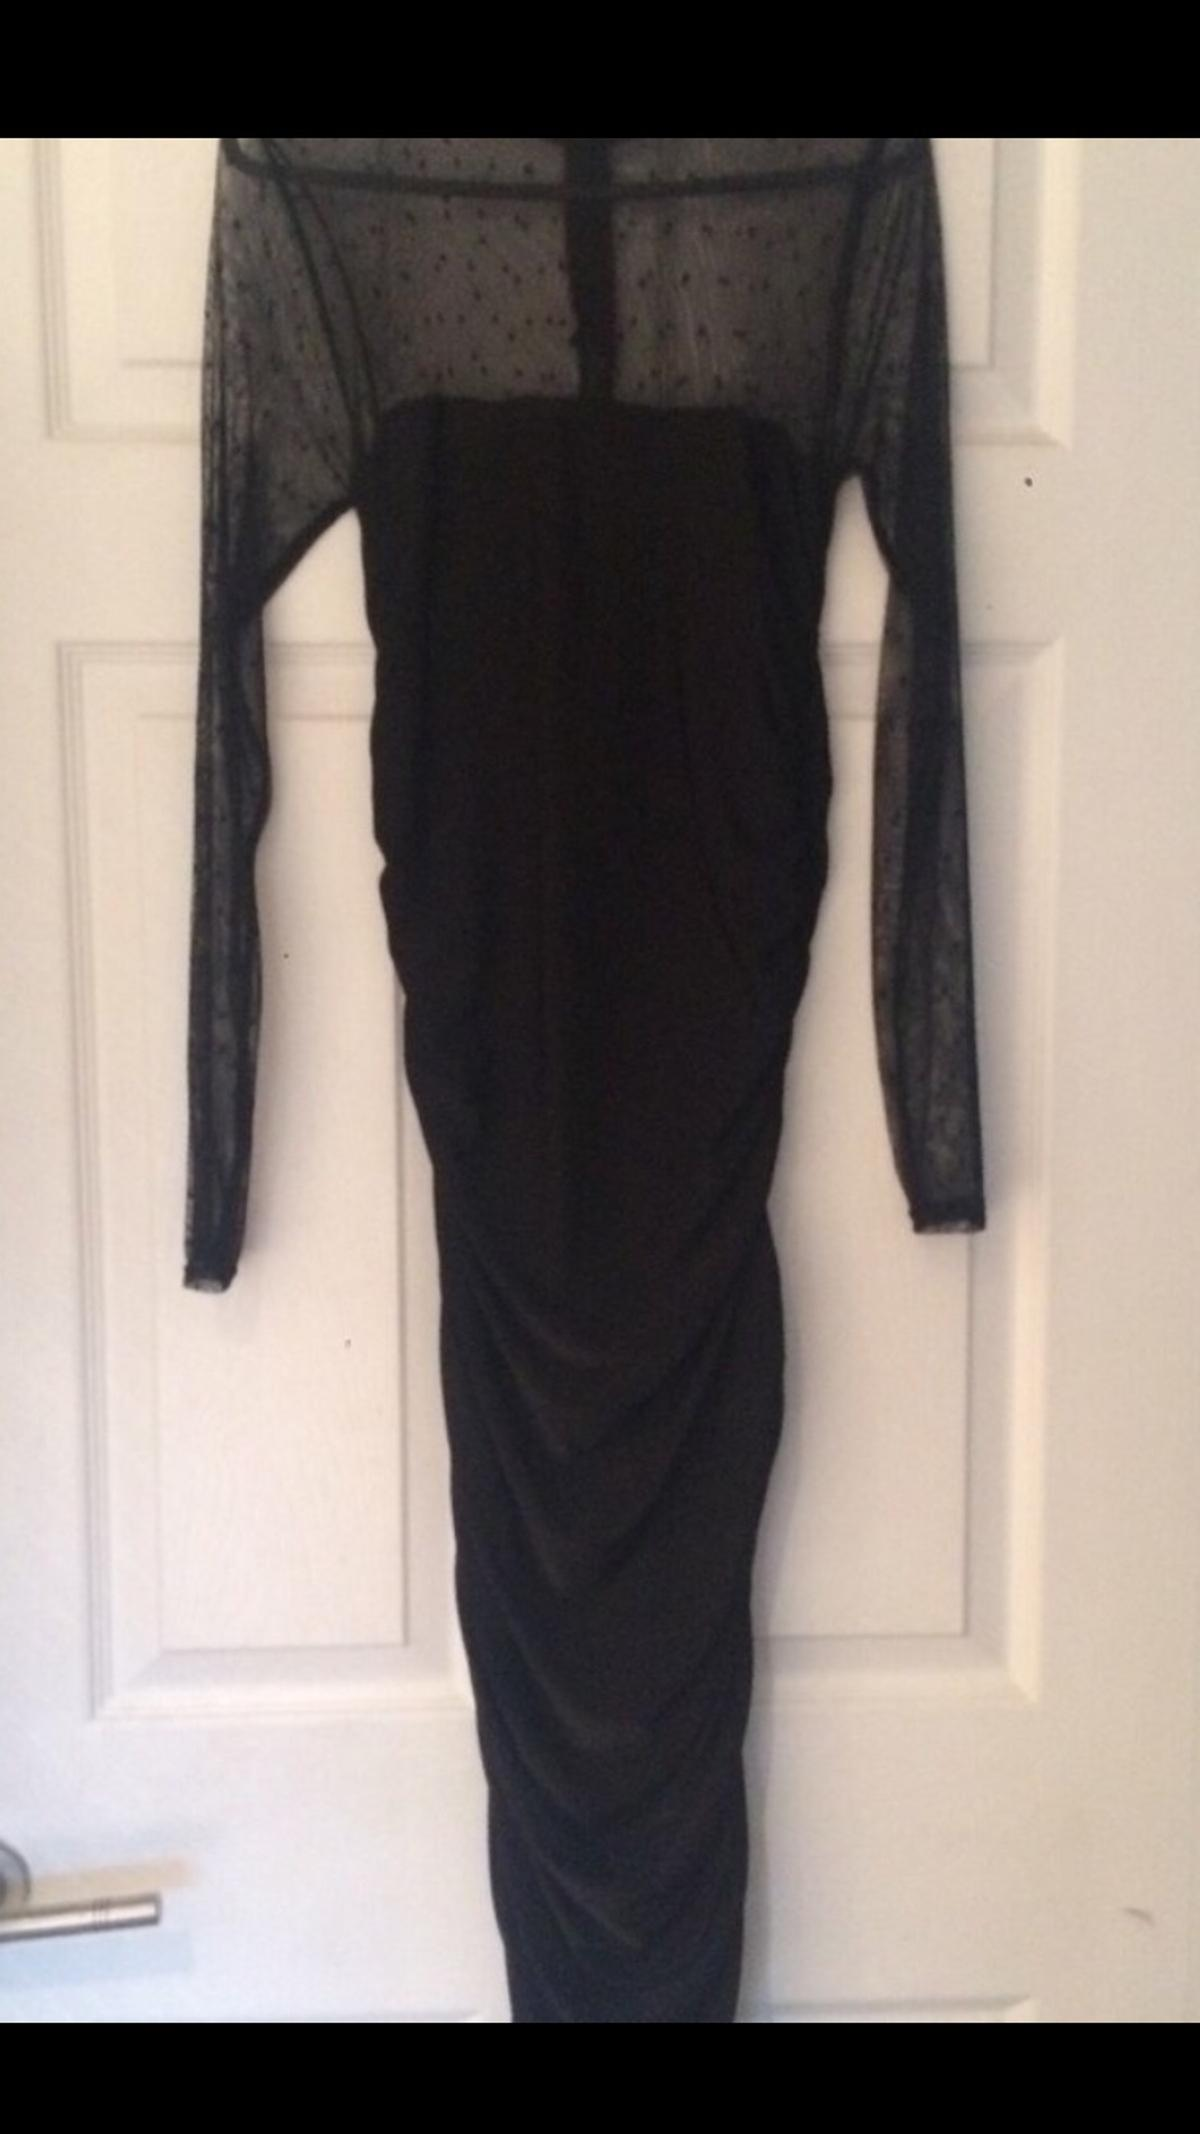 400368a6b31f5 Plt black dress in S8 Sheffield for £4.00 for sale - Shpock